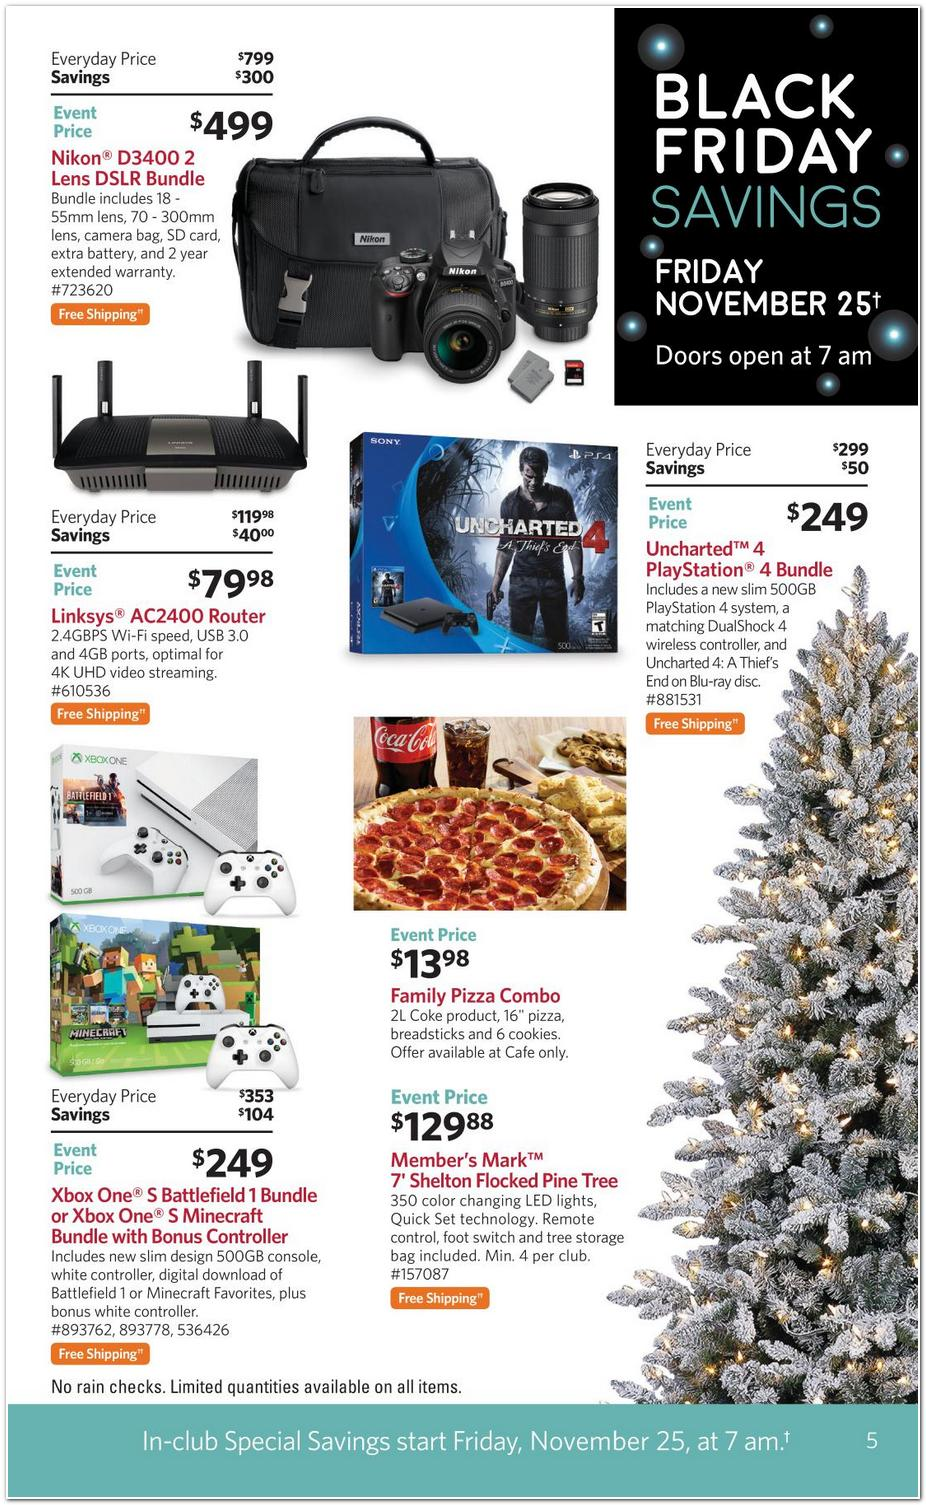 sams-club-black-friday-2016-ad-scan-p-5